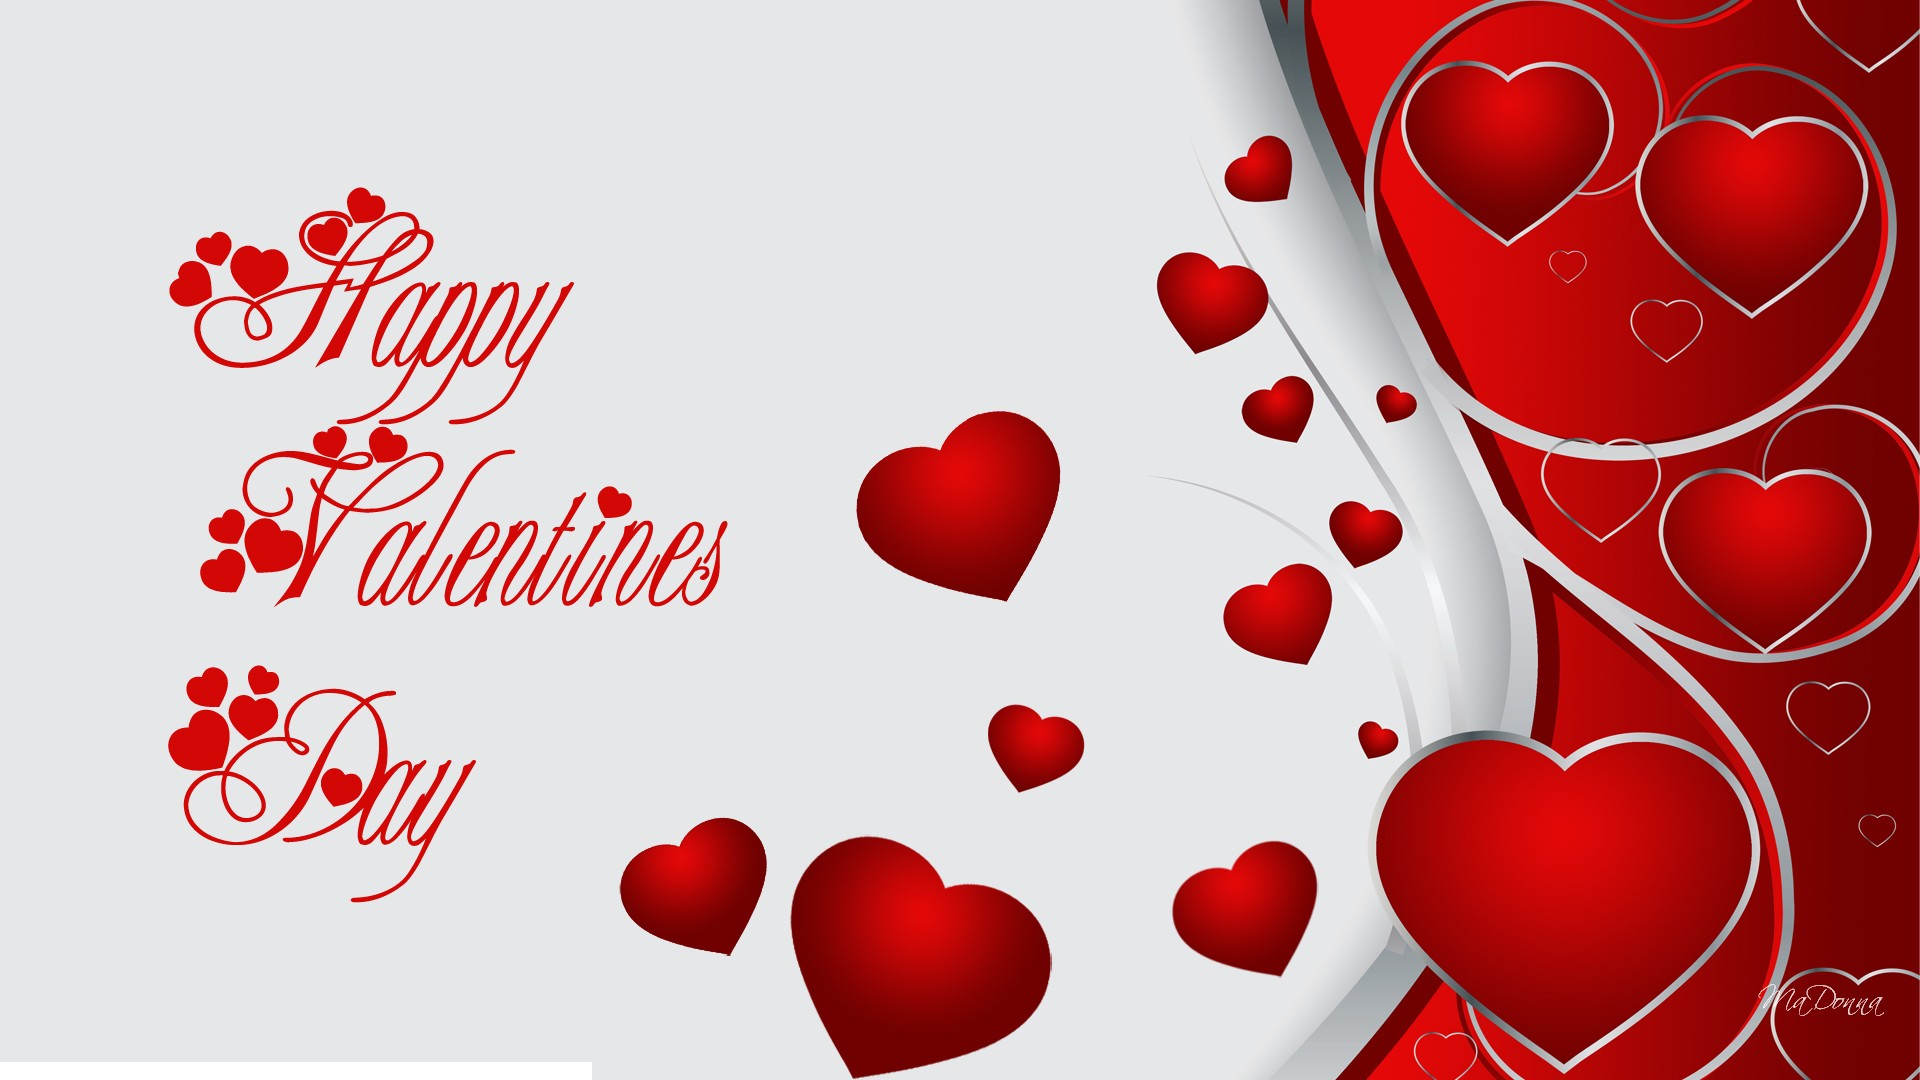 happy valentines day hd hearts free wallpaper 2016 - Happy Valentines Day Pictures Free